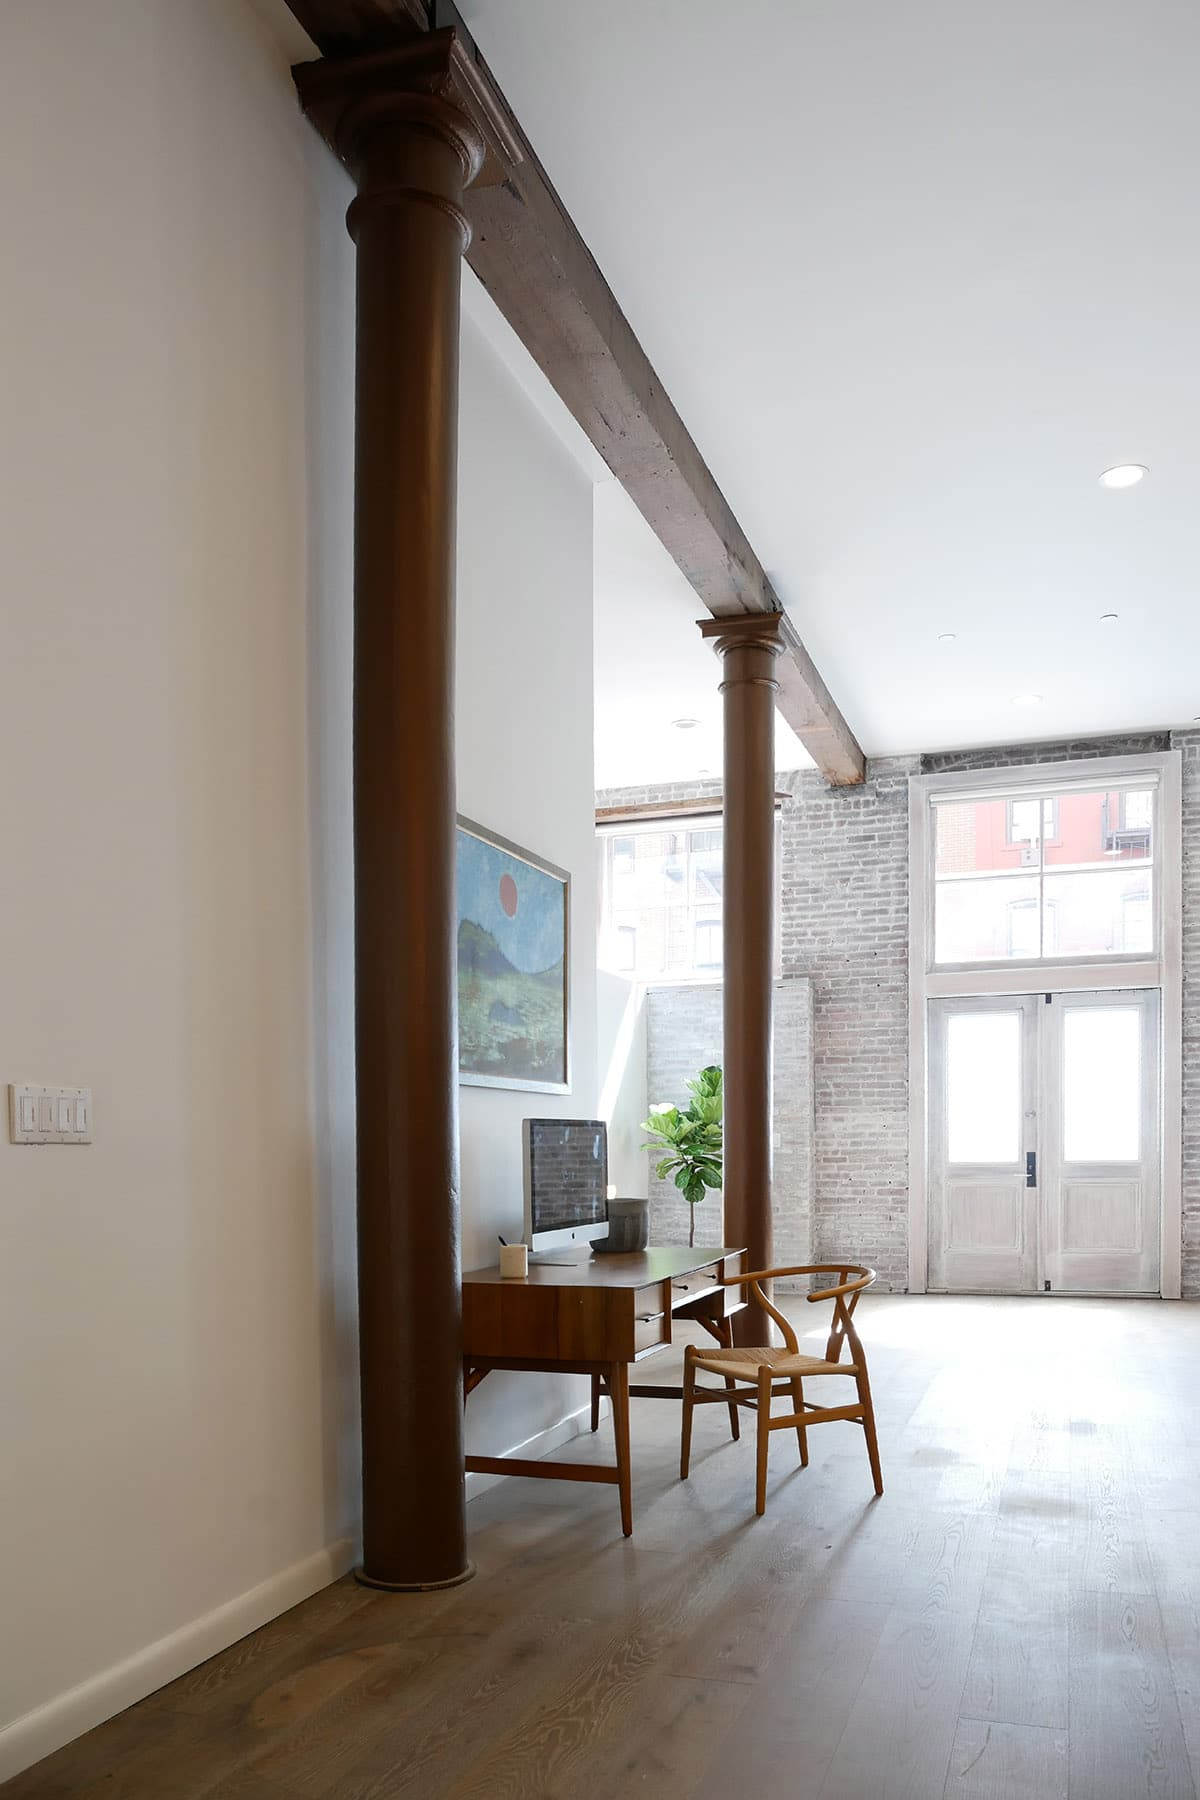 Cast Iron Columns and Wood Beam in a SoHo Loft, NYC